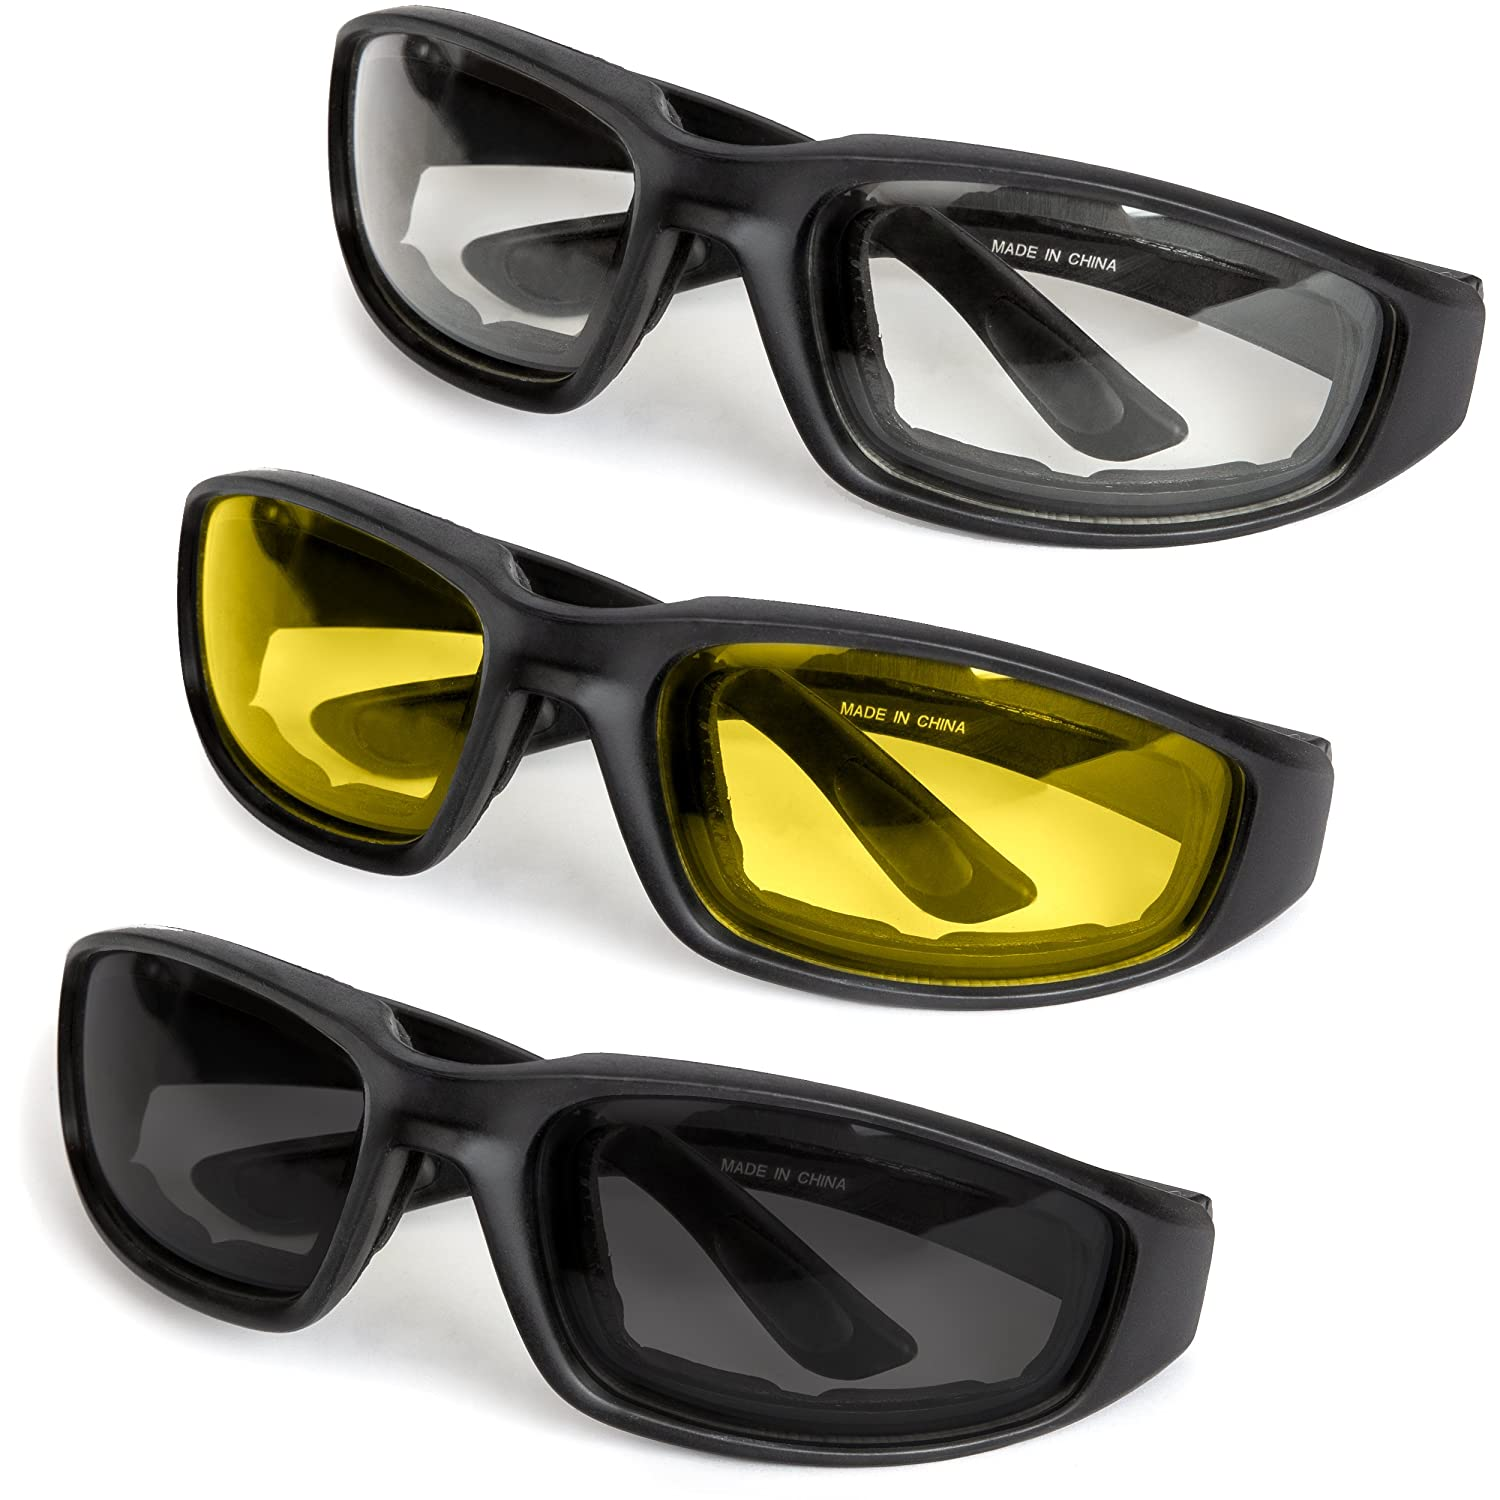 9654e4b0e0 Amazon.com  3-Pack Motorcycle Glasses – Foam Padding – Anti-Wind   Dust –  Polycarbonate Lens (Yellow